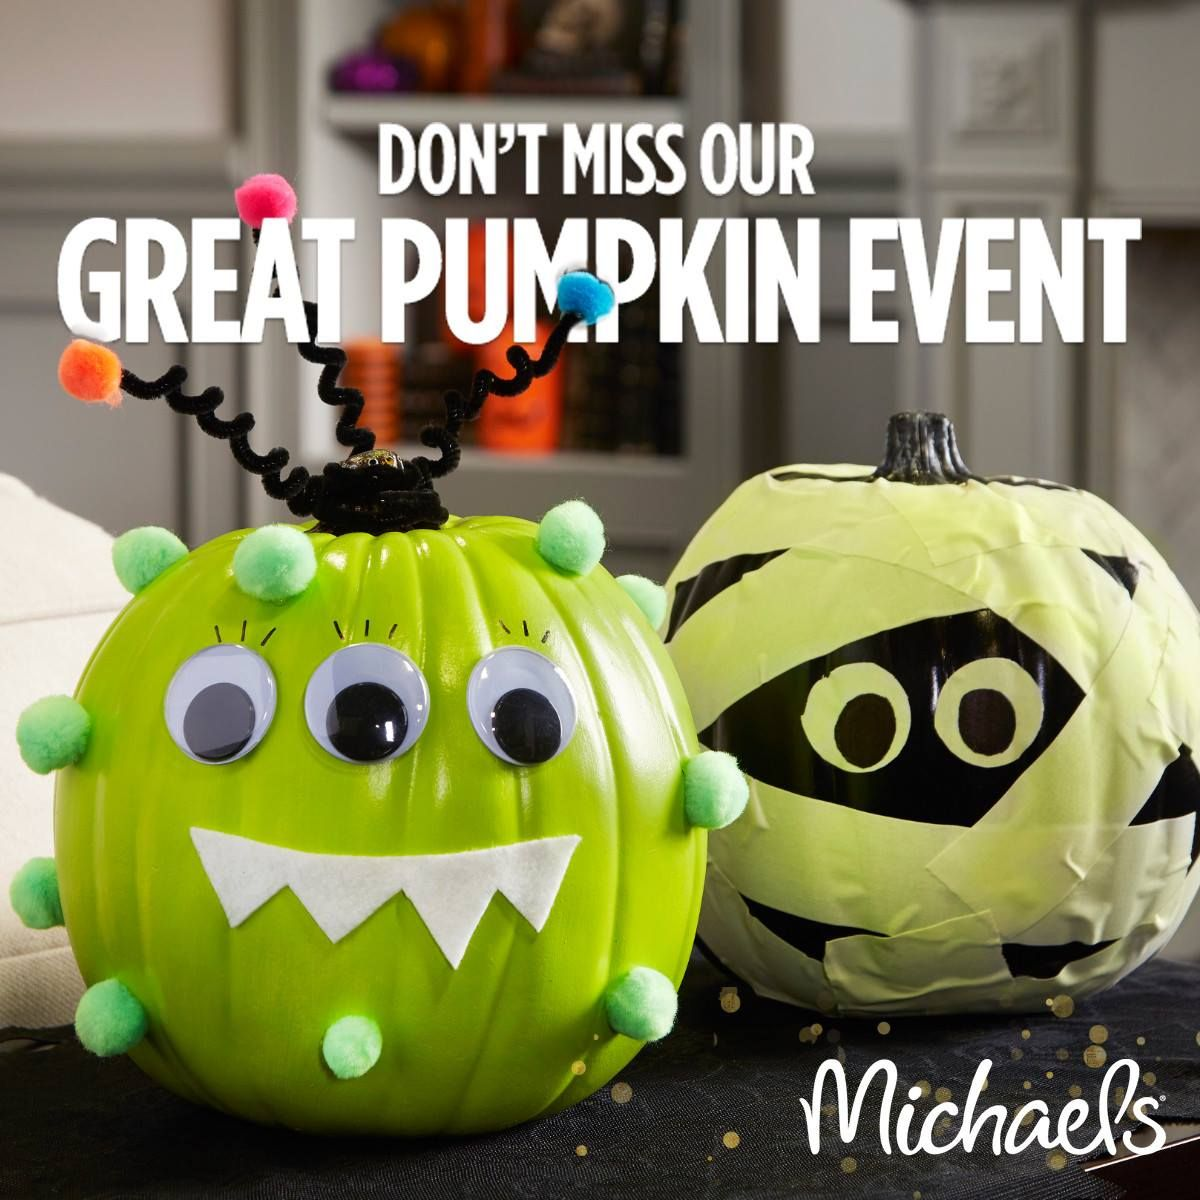 25++ Halloween crafts for adults near me ideas